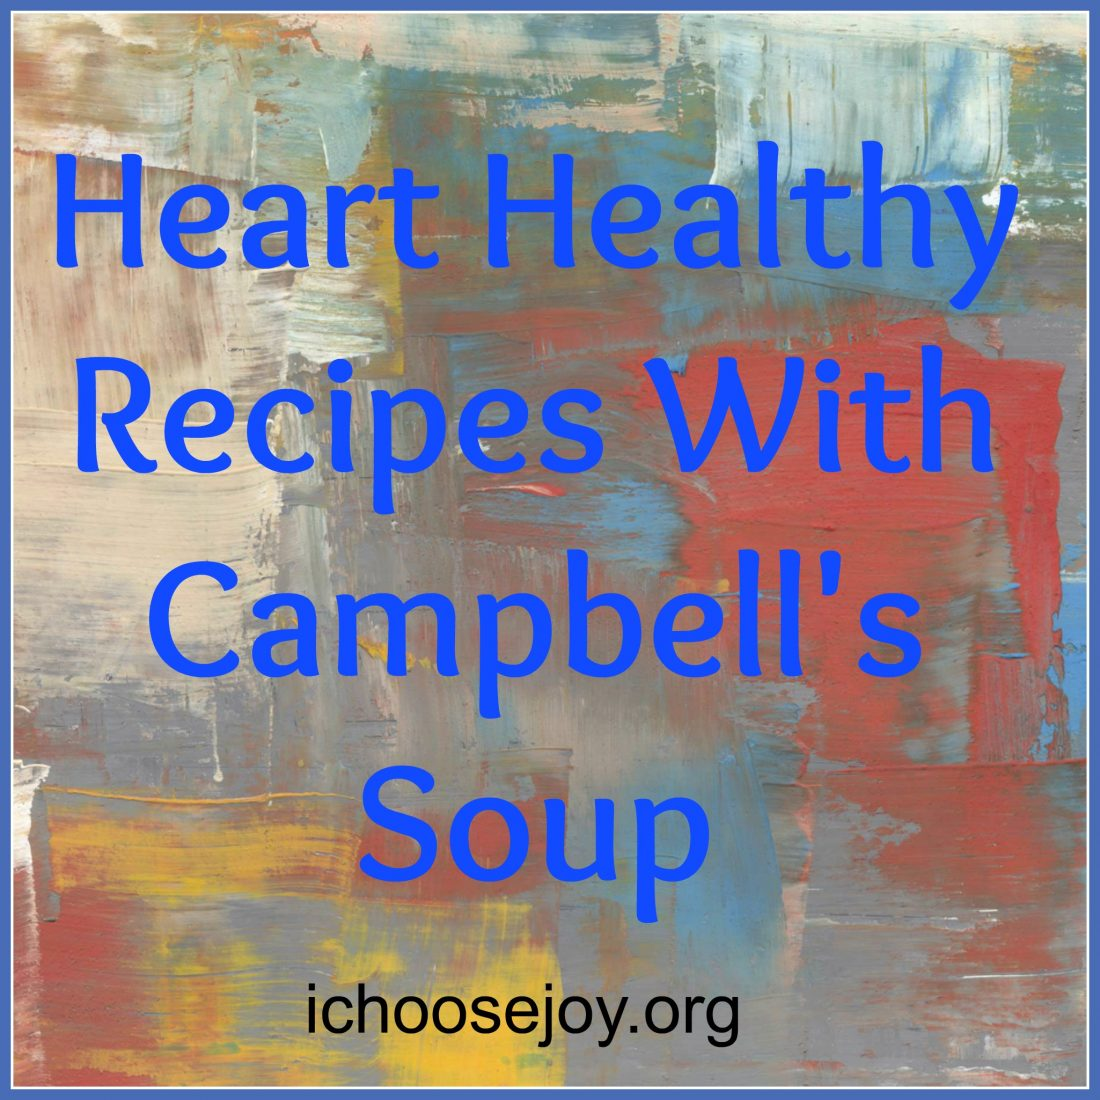 Heart Healthy Recipes With Campbell's Soup